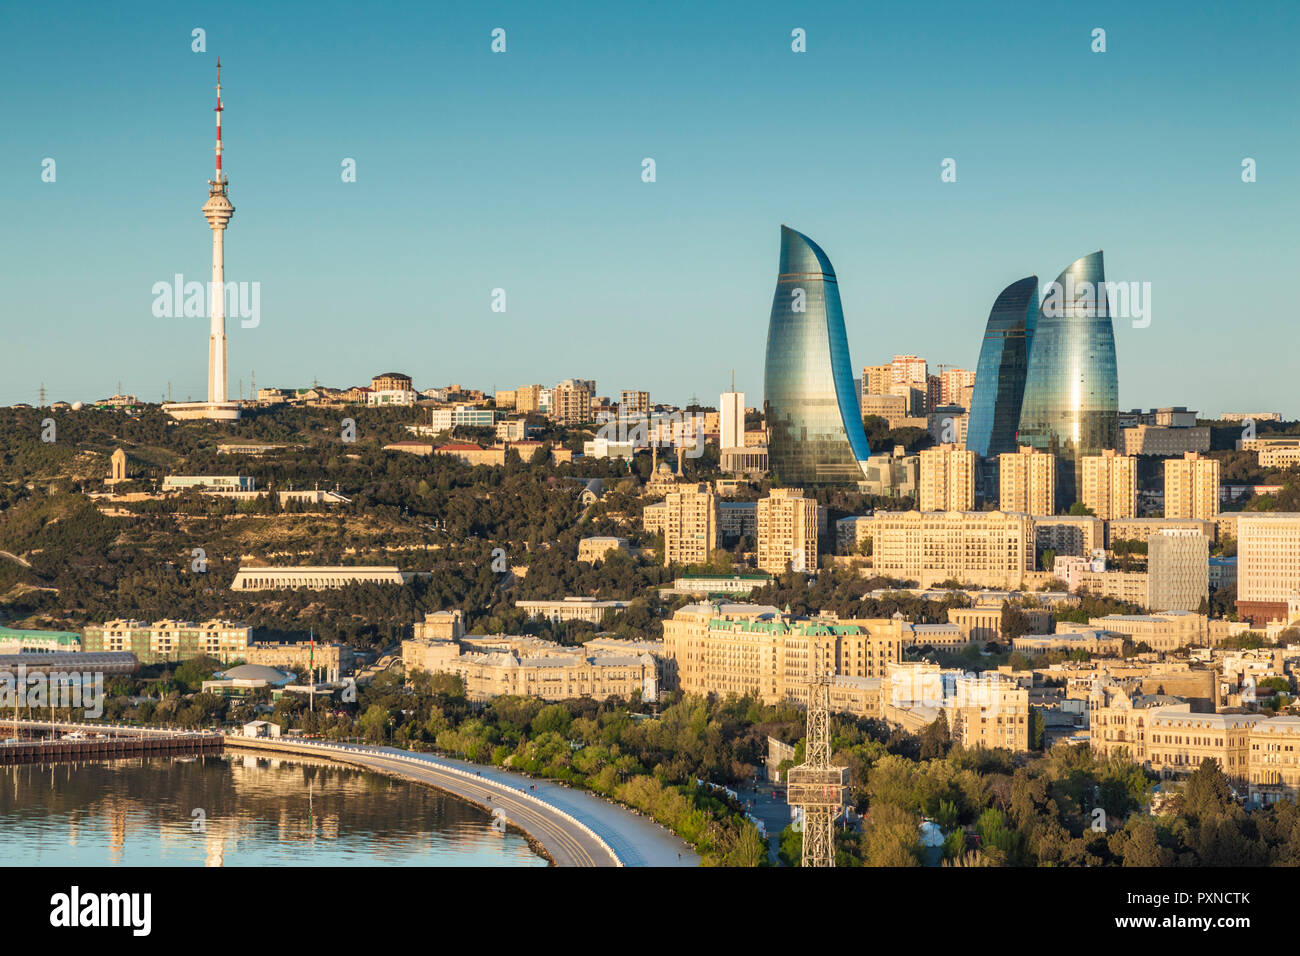 Azerbaijan, Baku, high angle city skyline, from the north - Stock Image